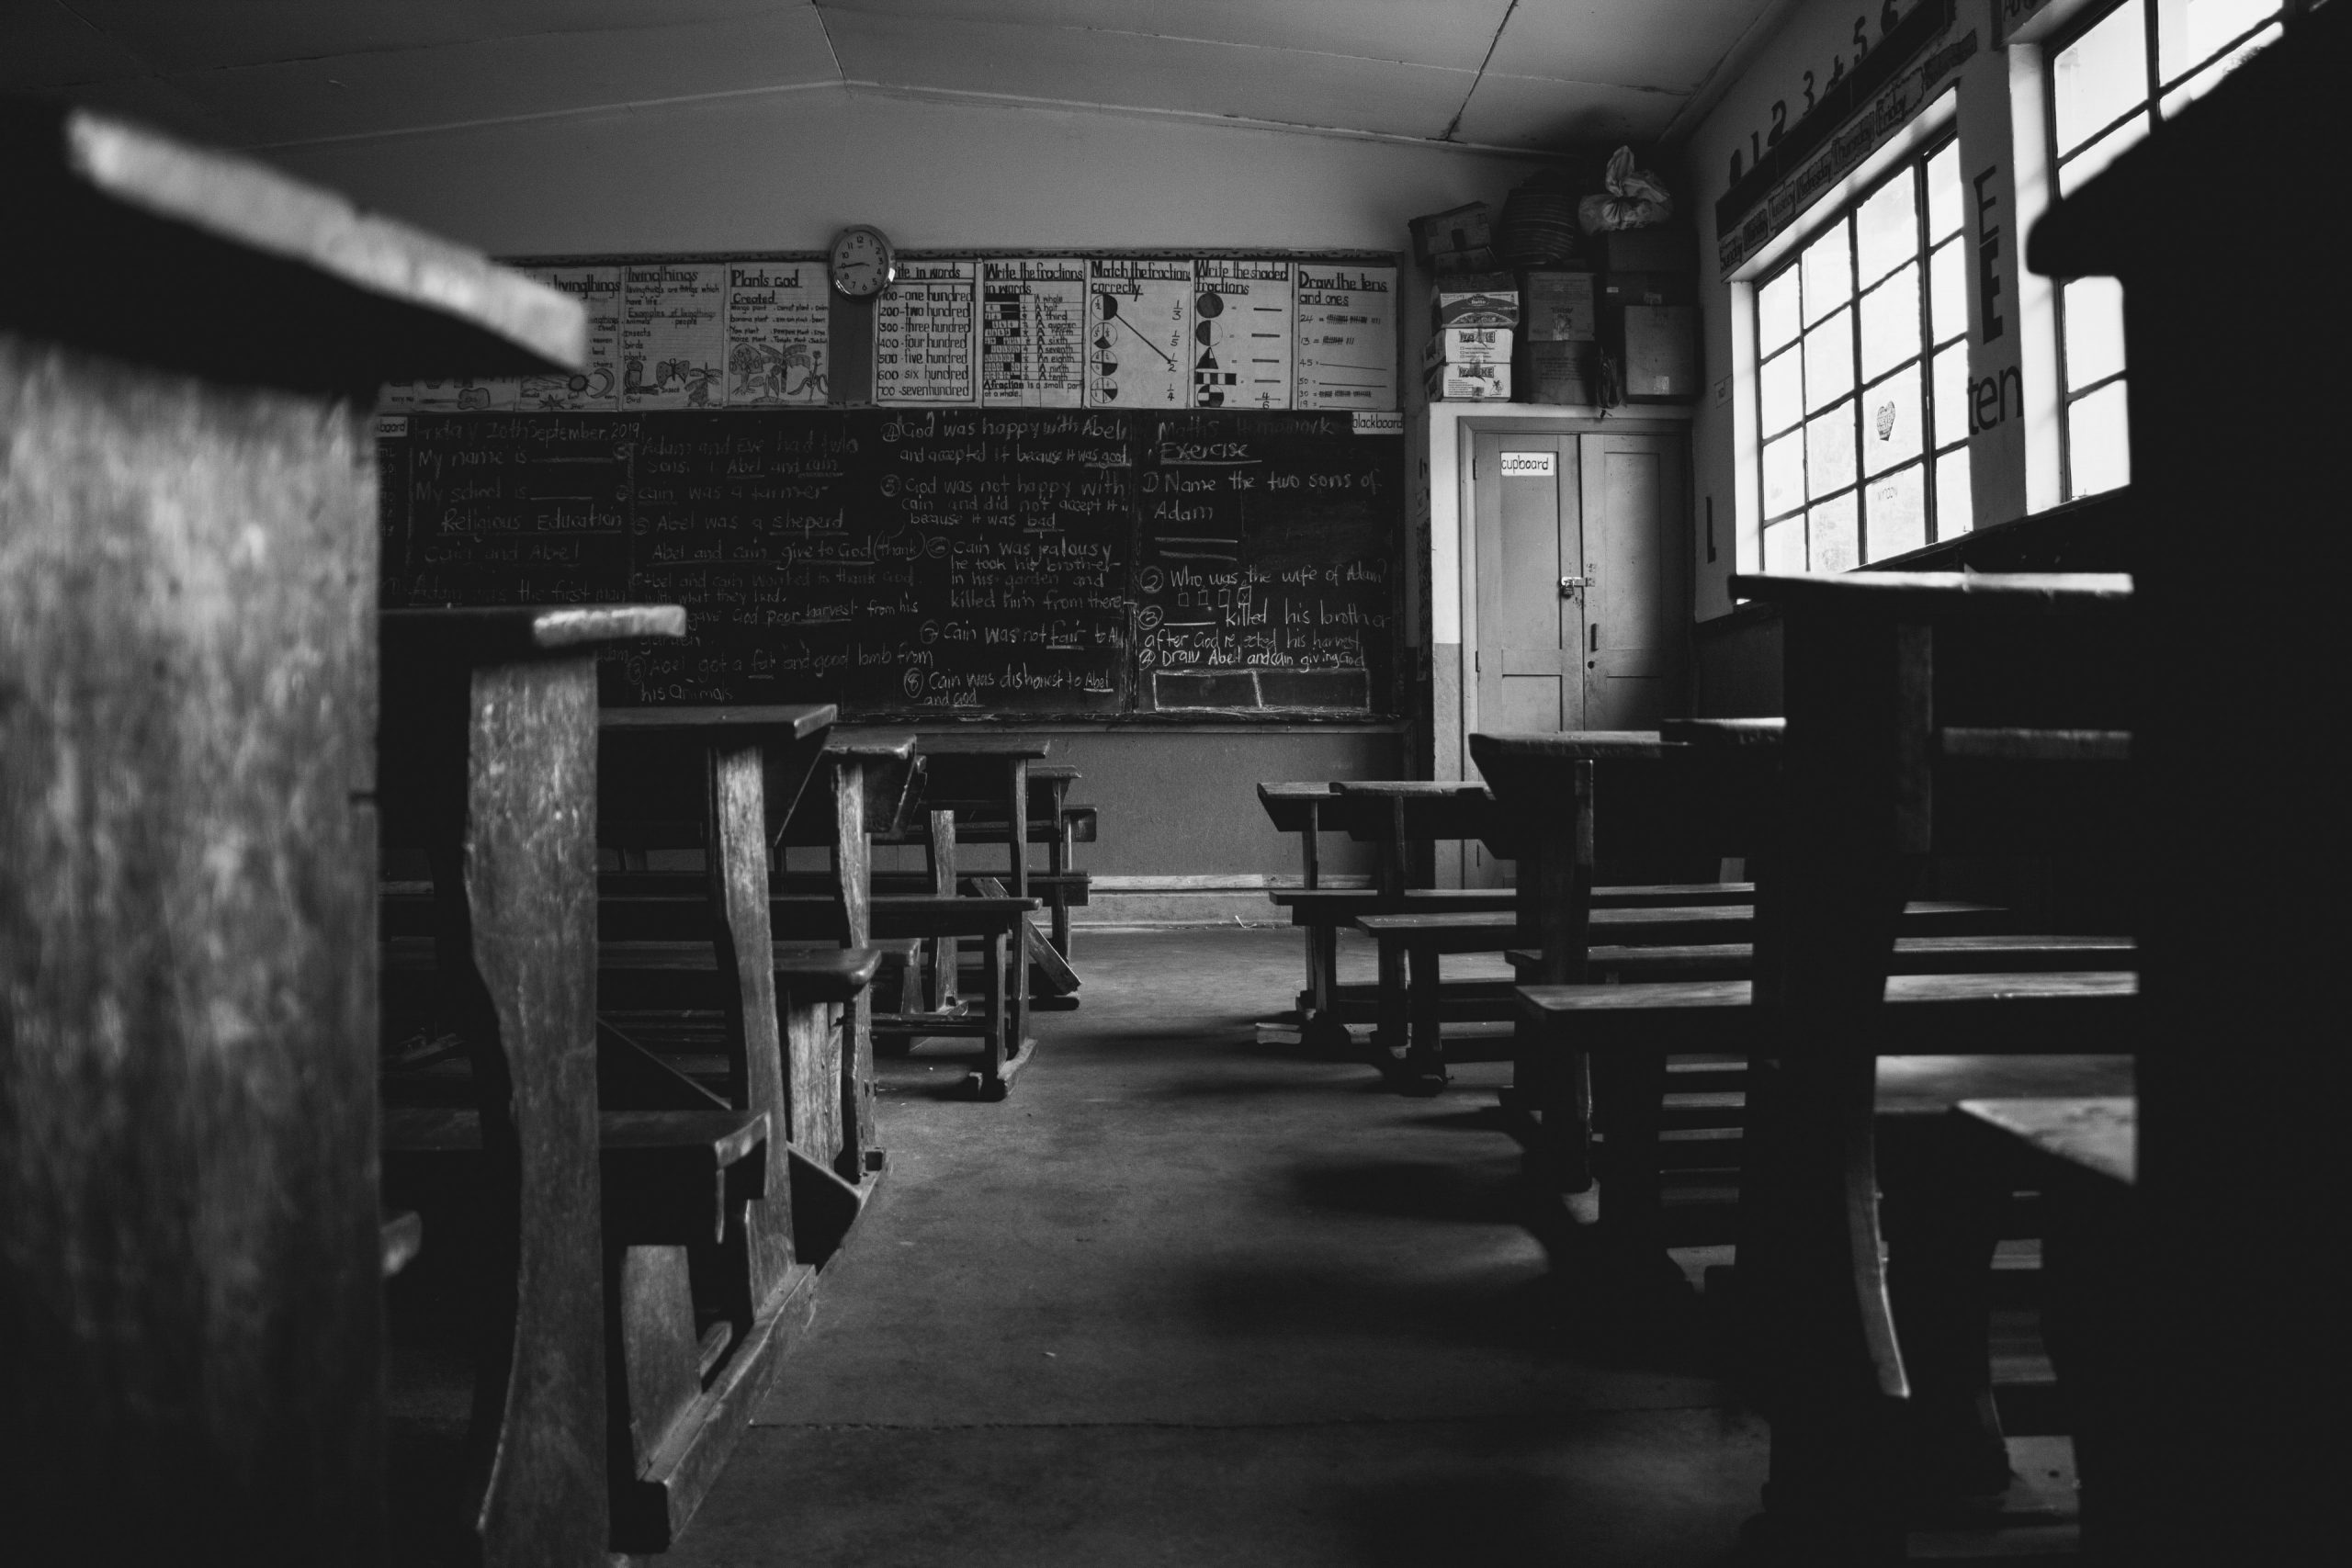 Why Don't Students Like School by Daniel T. Willingham (Notes)